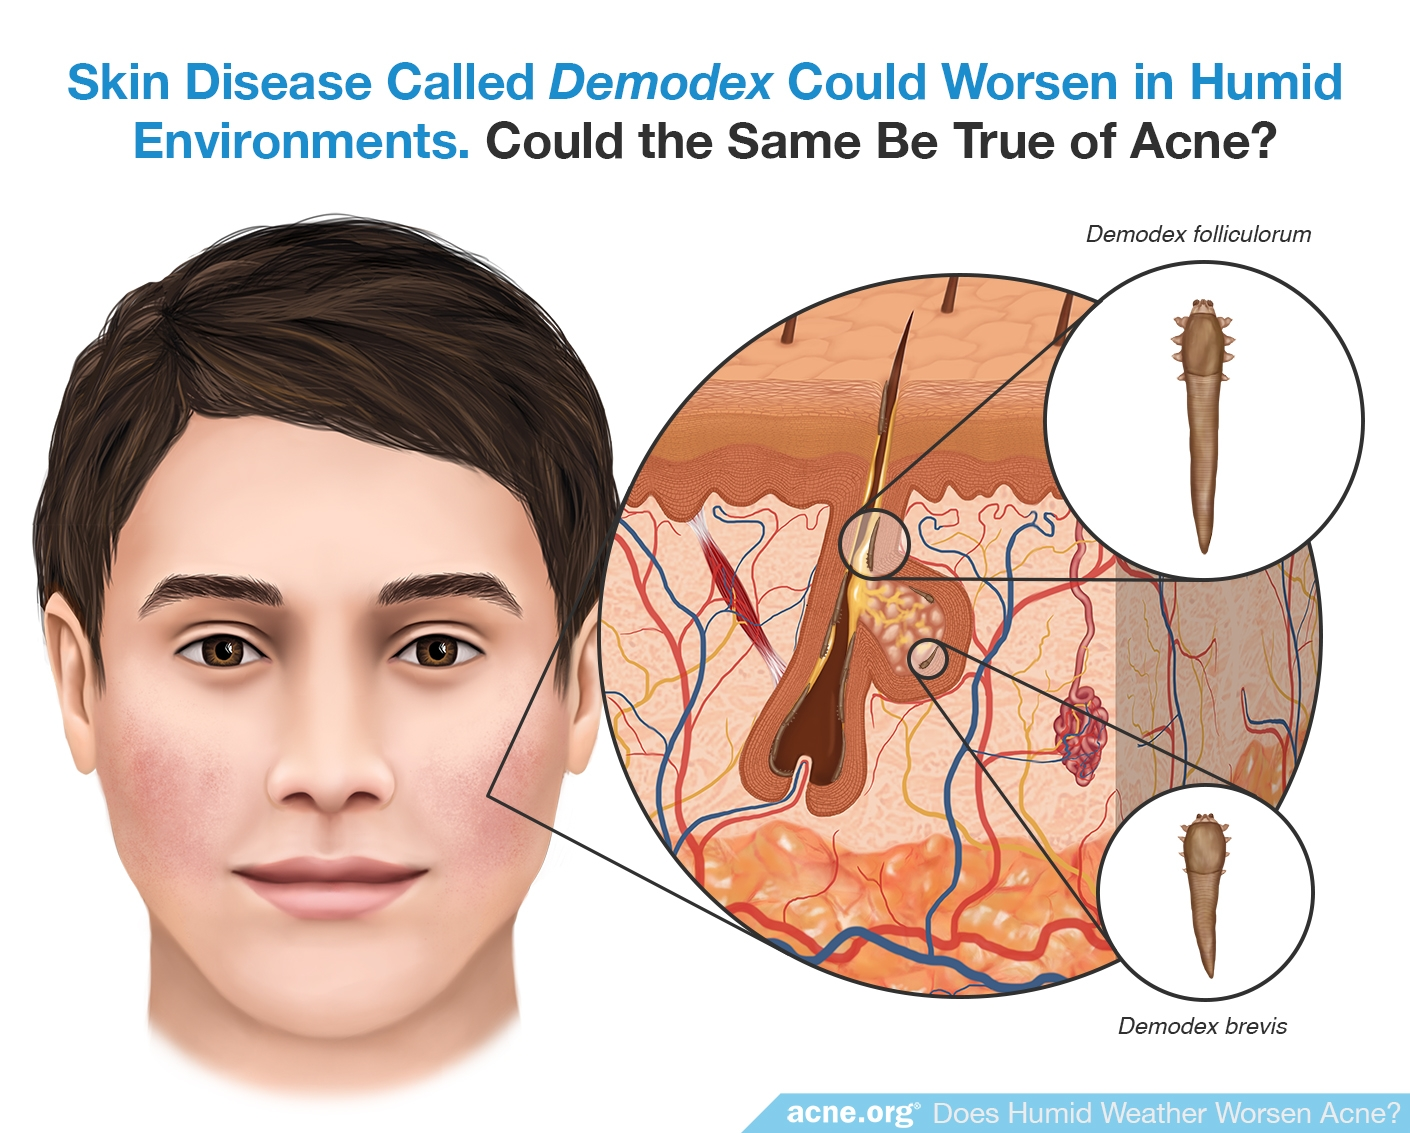 Demodex Could Worsen in Humid Environments - Could the Same Be True of Acne?